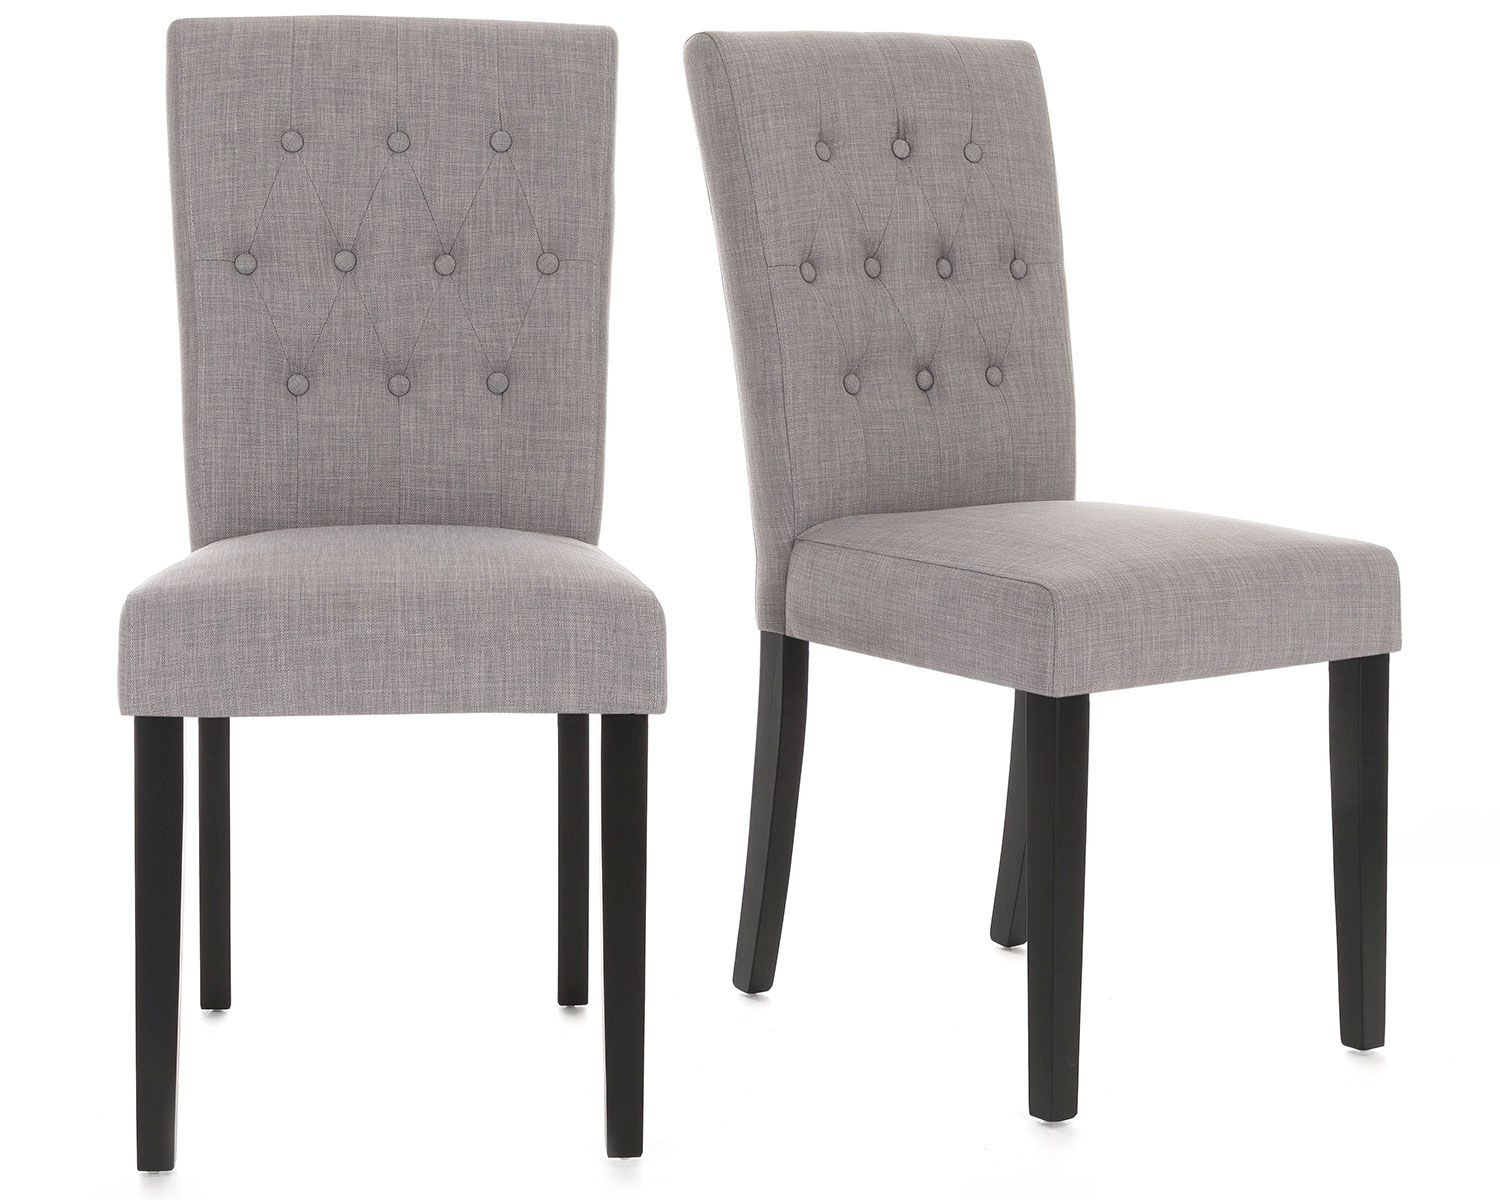 Florence Dining Chair In Grey Linen With Black Legs Dining